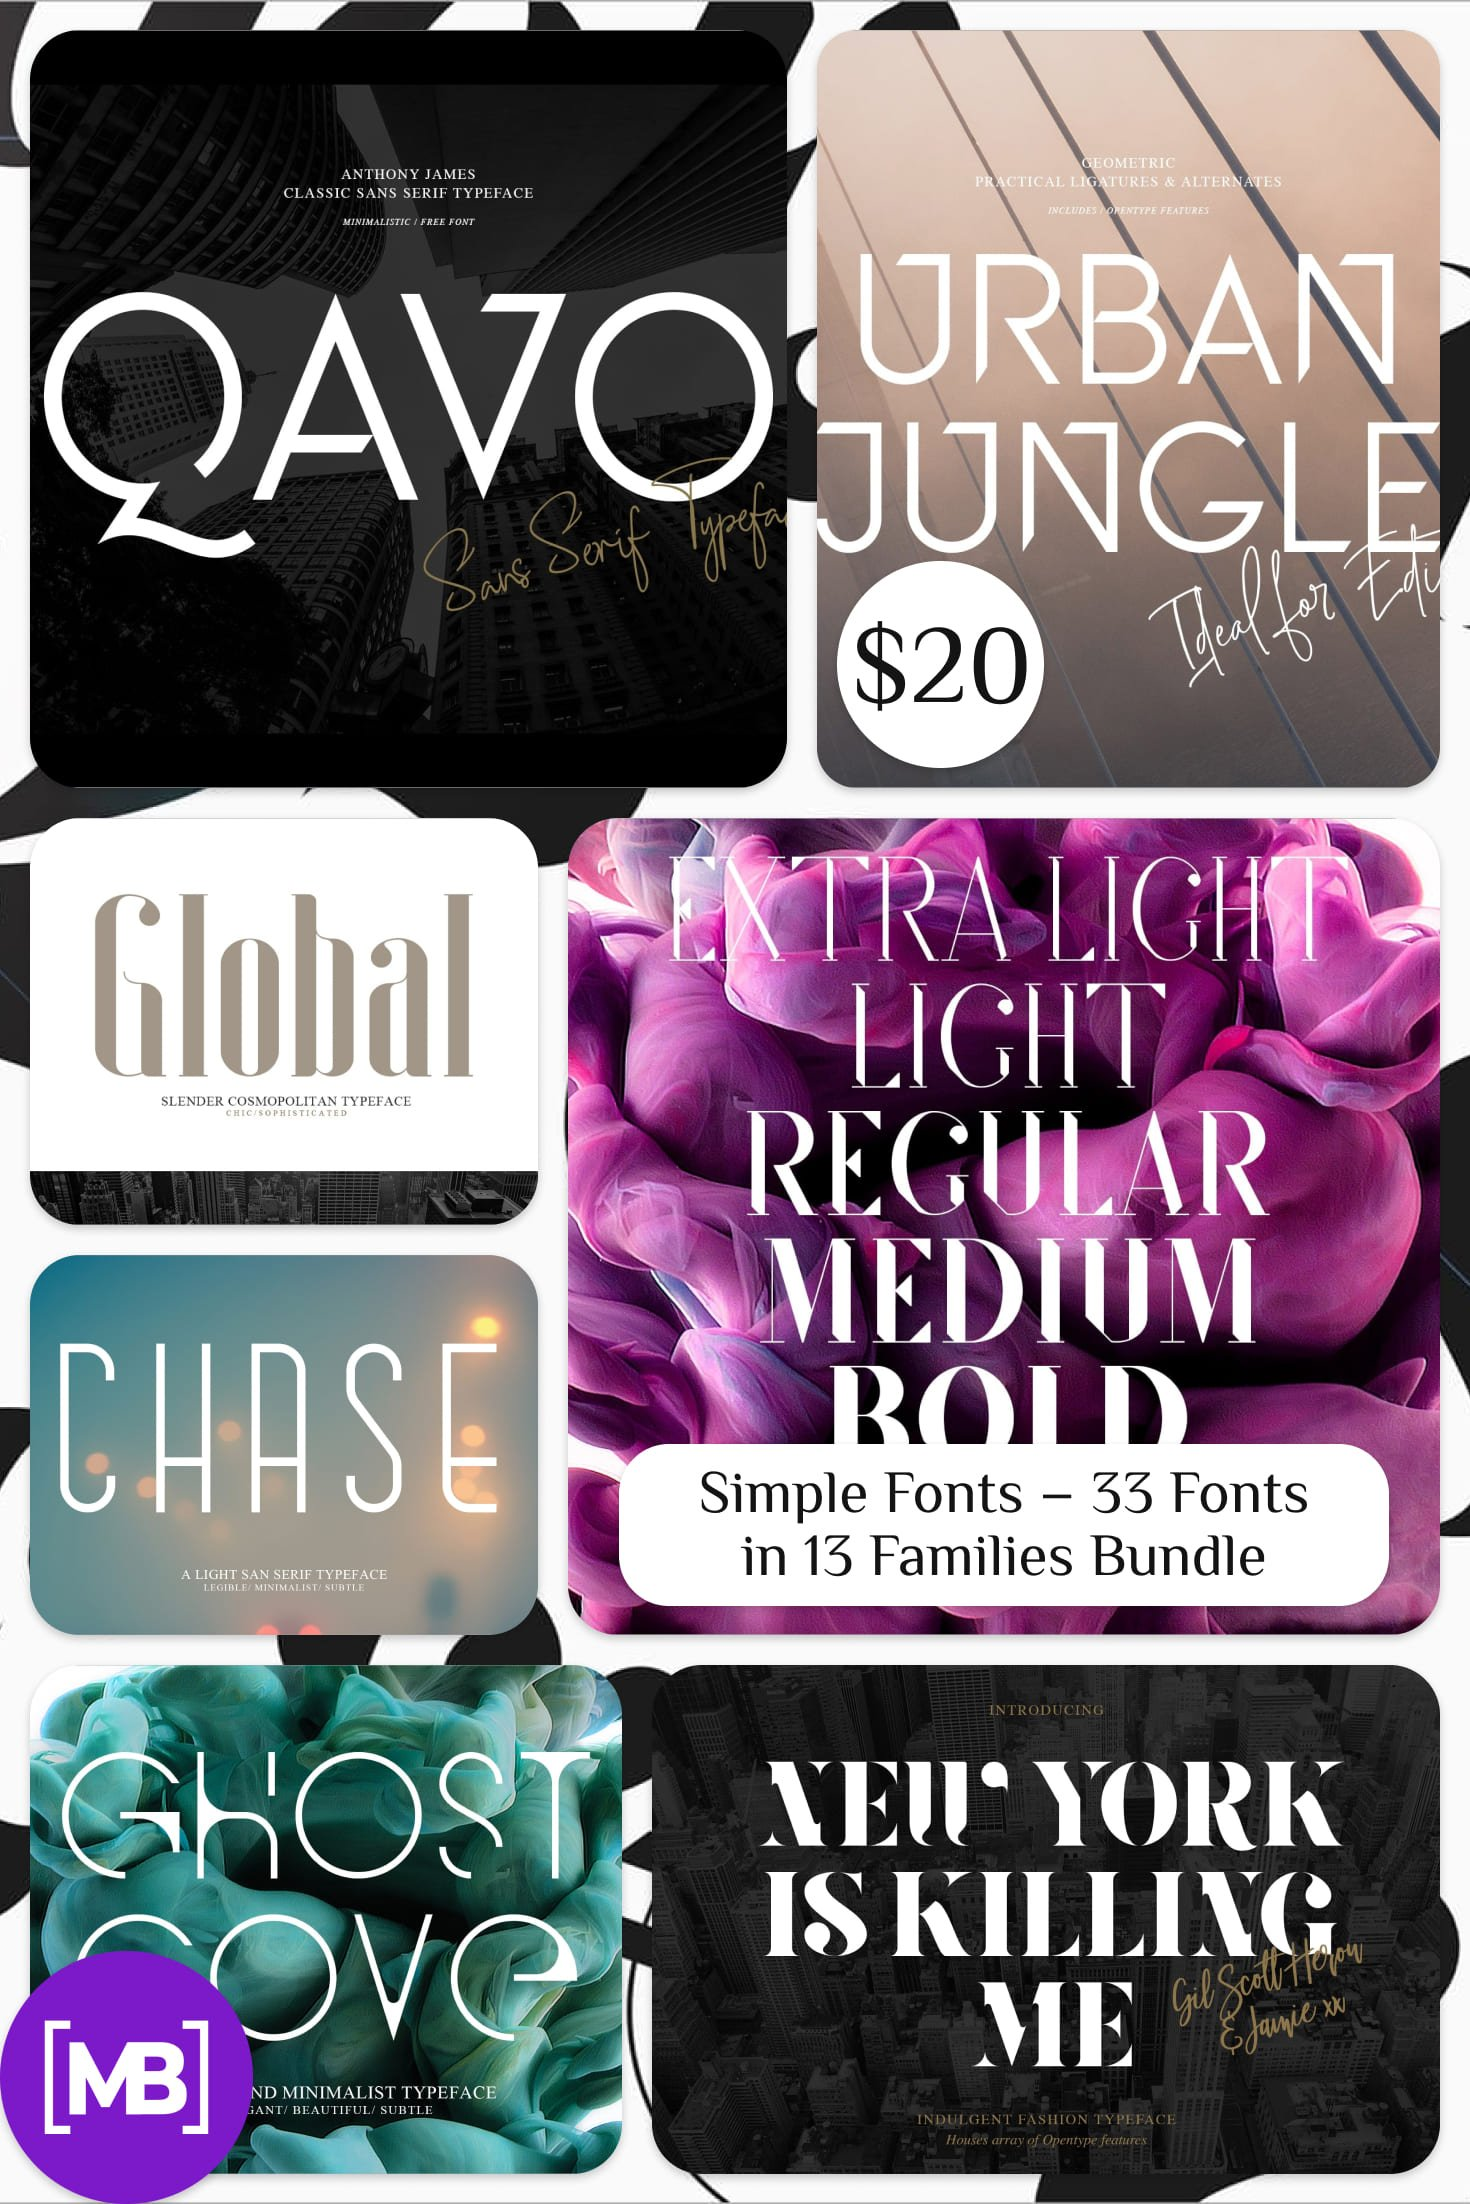 Simple Fonts - 33 Fonts in 13 Families Bundle. Collage Image.